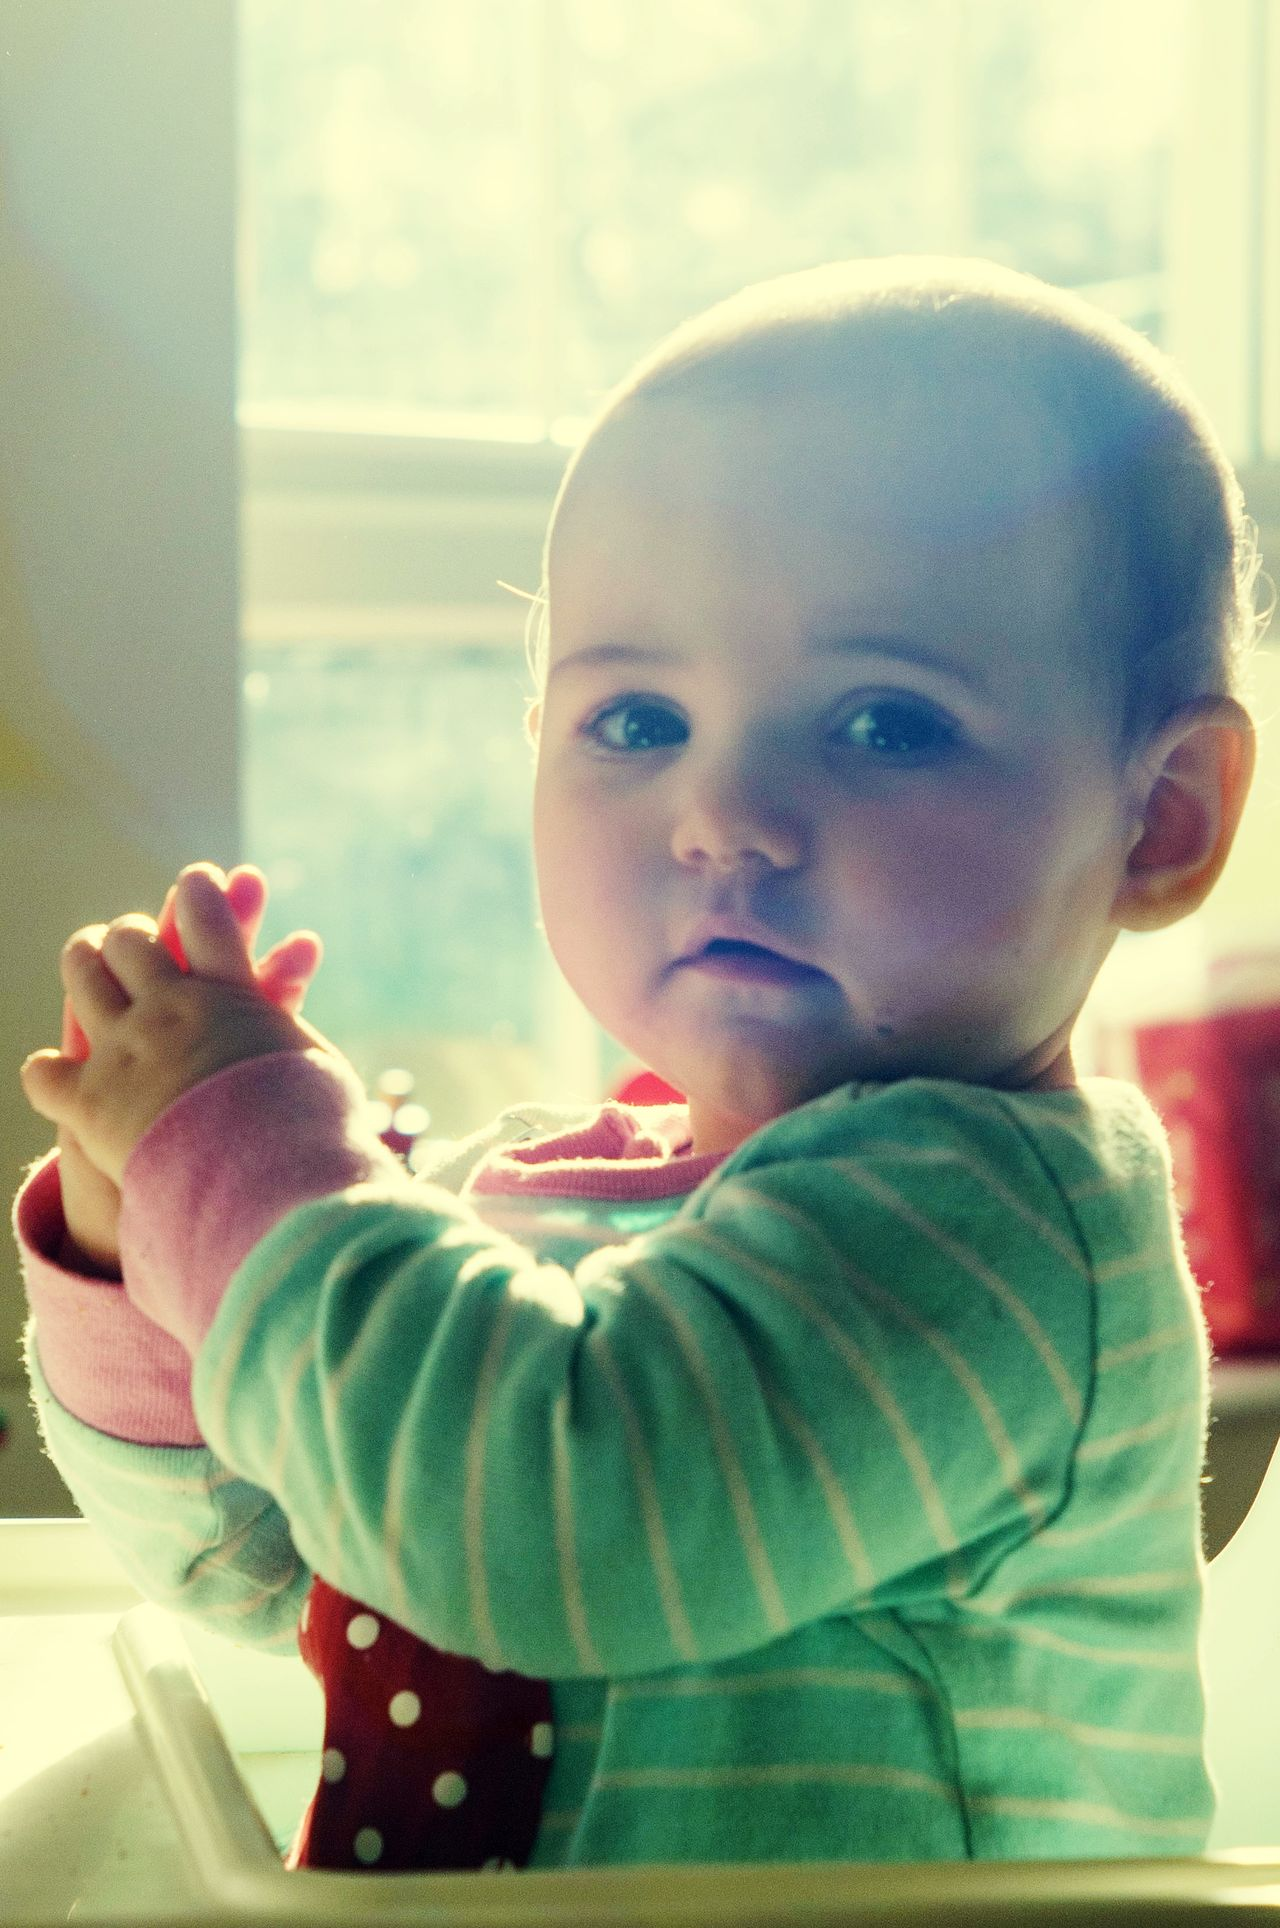 Childhood Child Playing Baby One Person Day Toddler  People Window Babies Only Indoors  Sunlight Human Body Part Happiness Smiling Close-up Warm Clothing Human Hand Sky Adult Clapping Sunlight And Shade